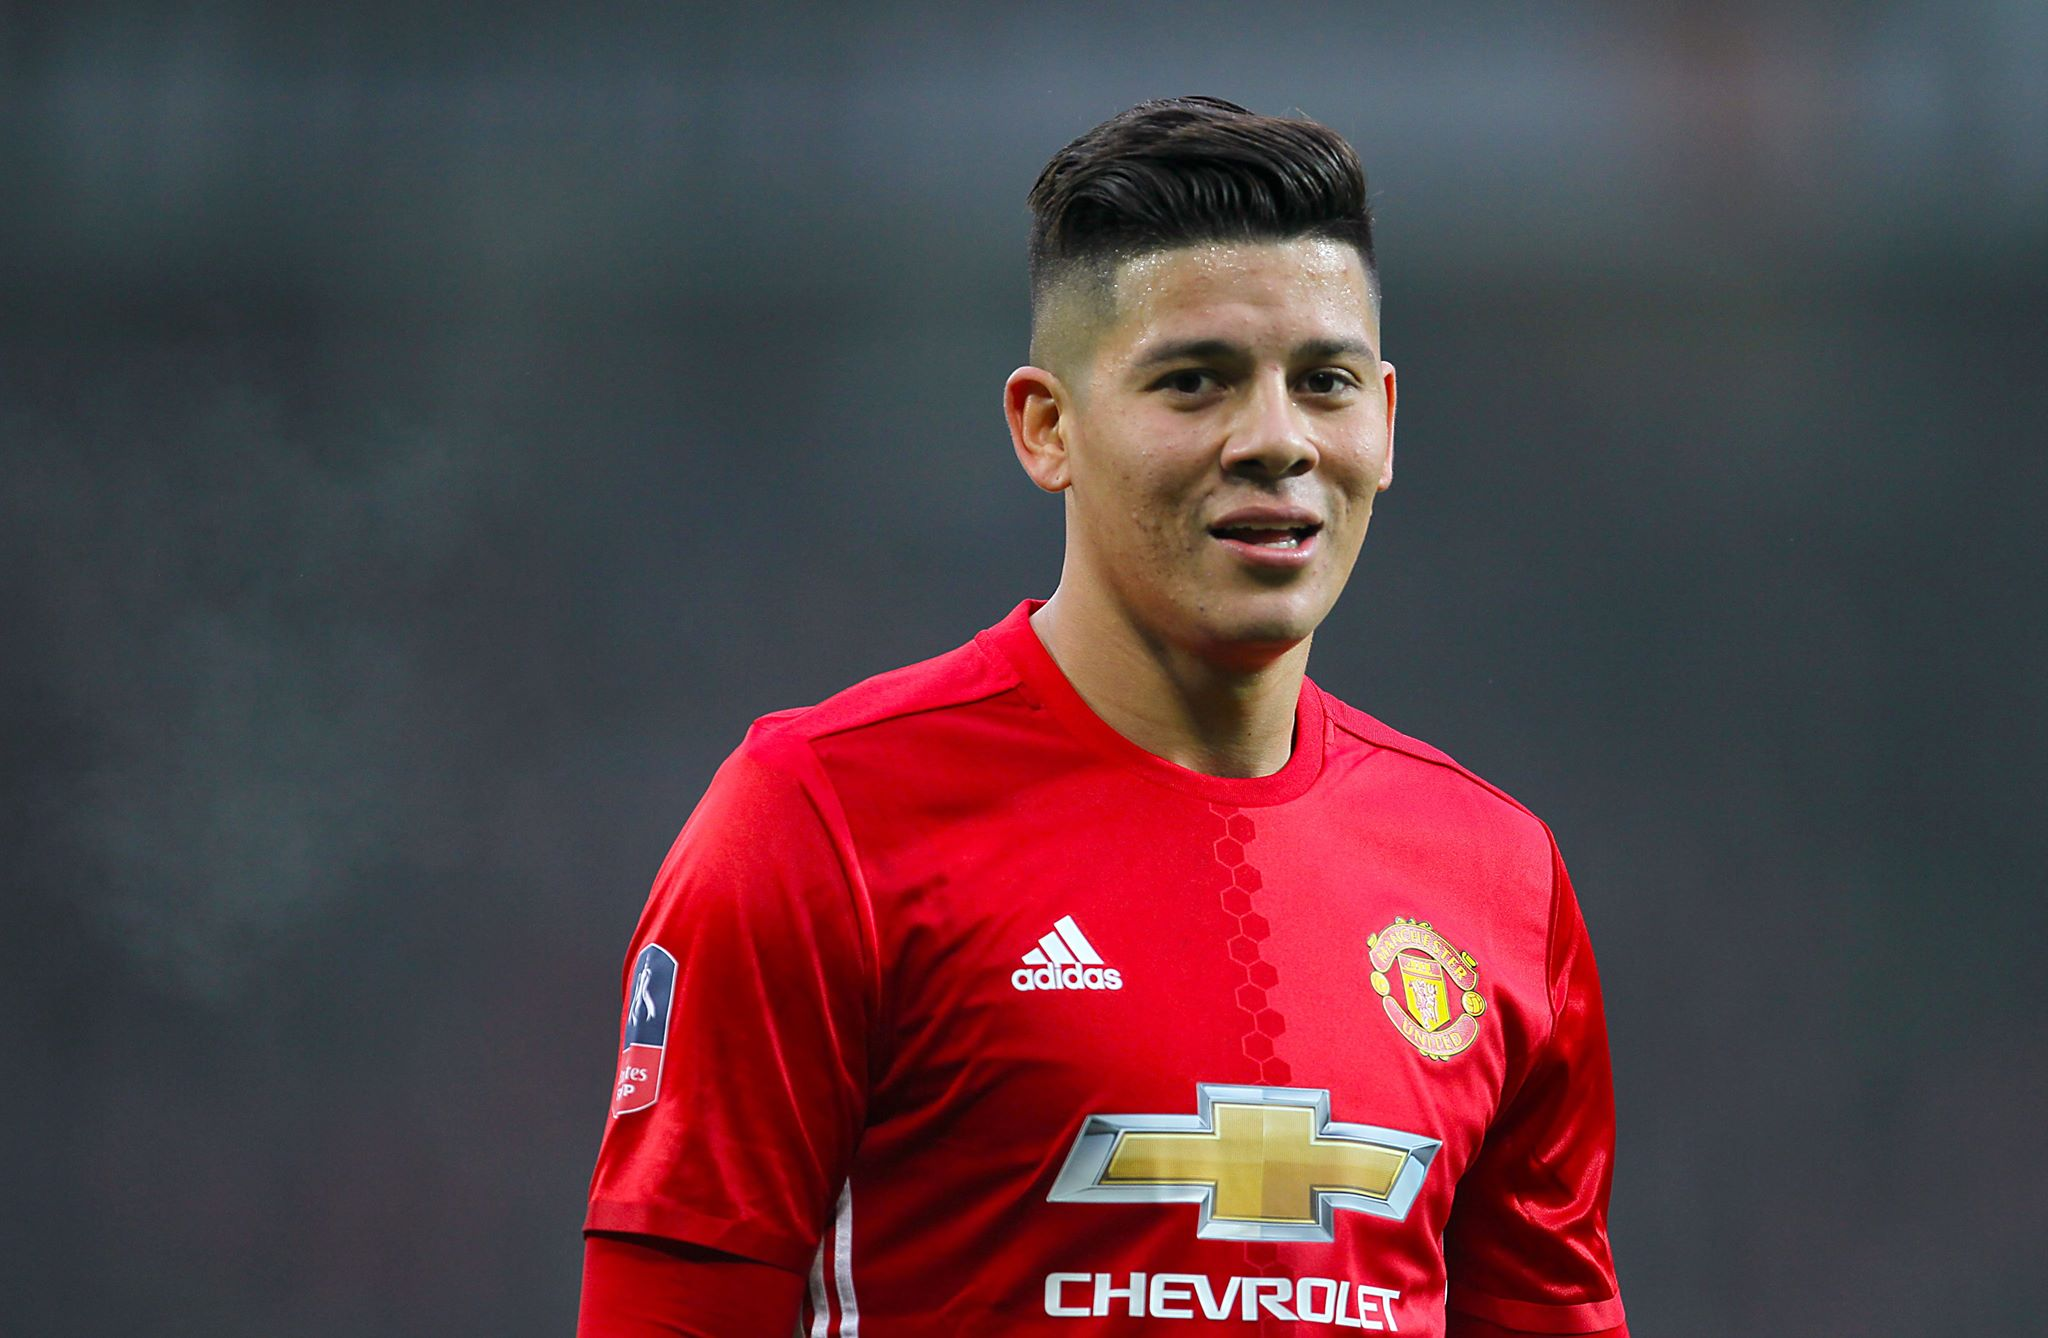 Everton close to signing £30m Man United defender Rojo